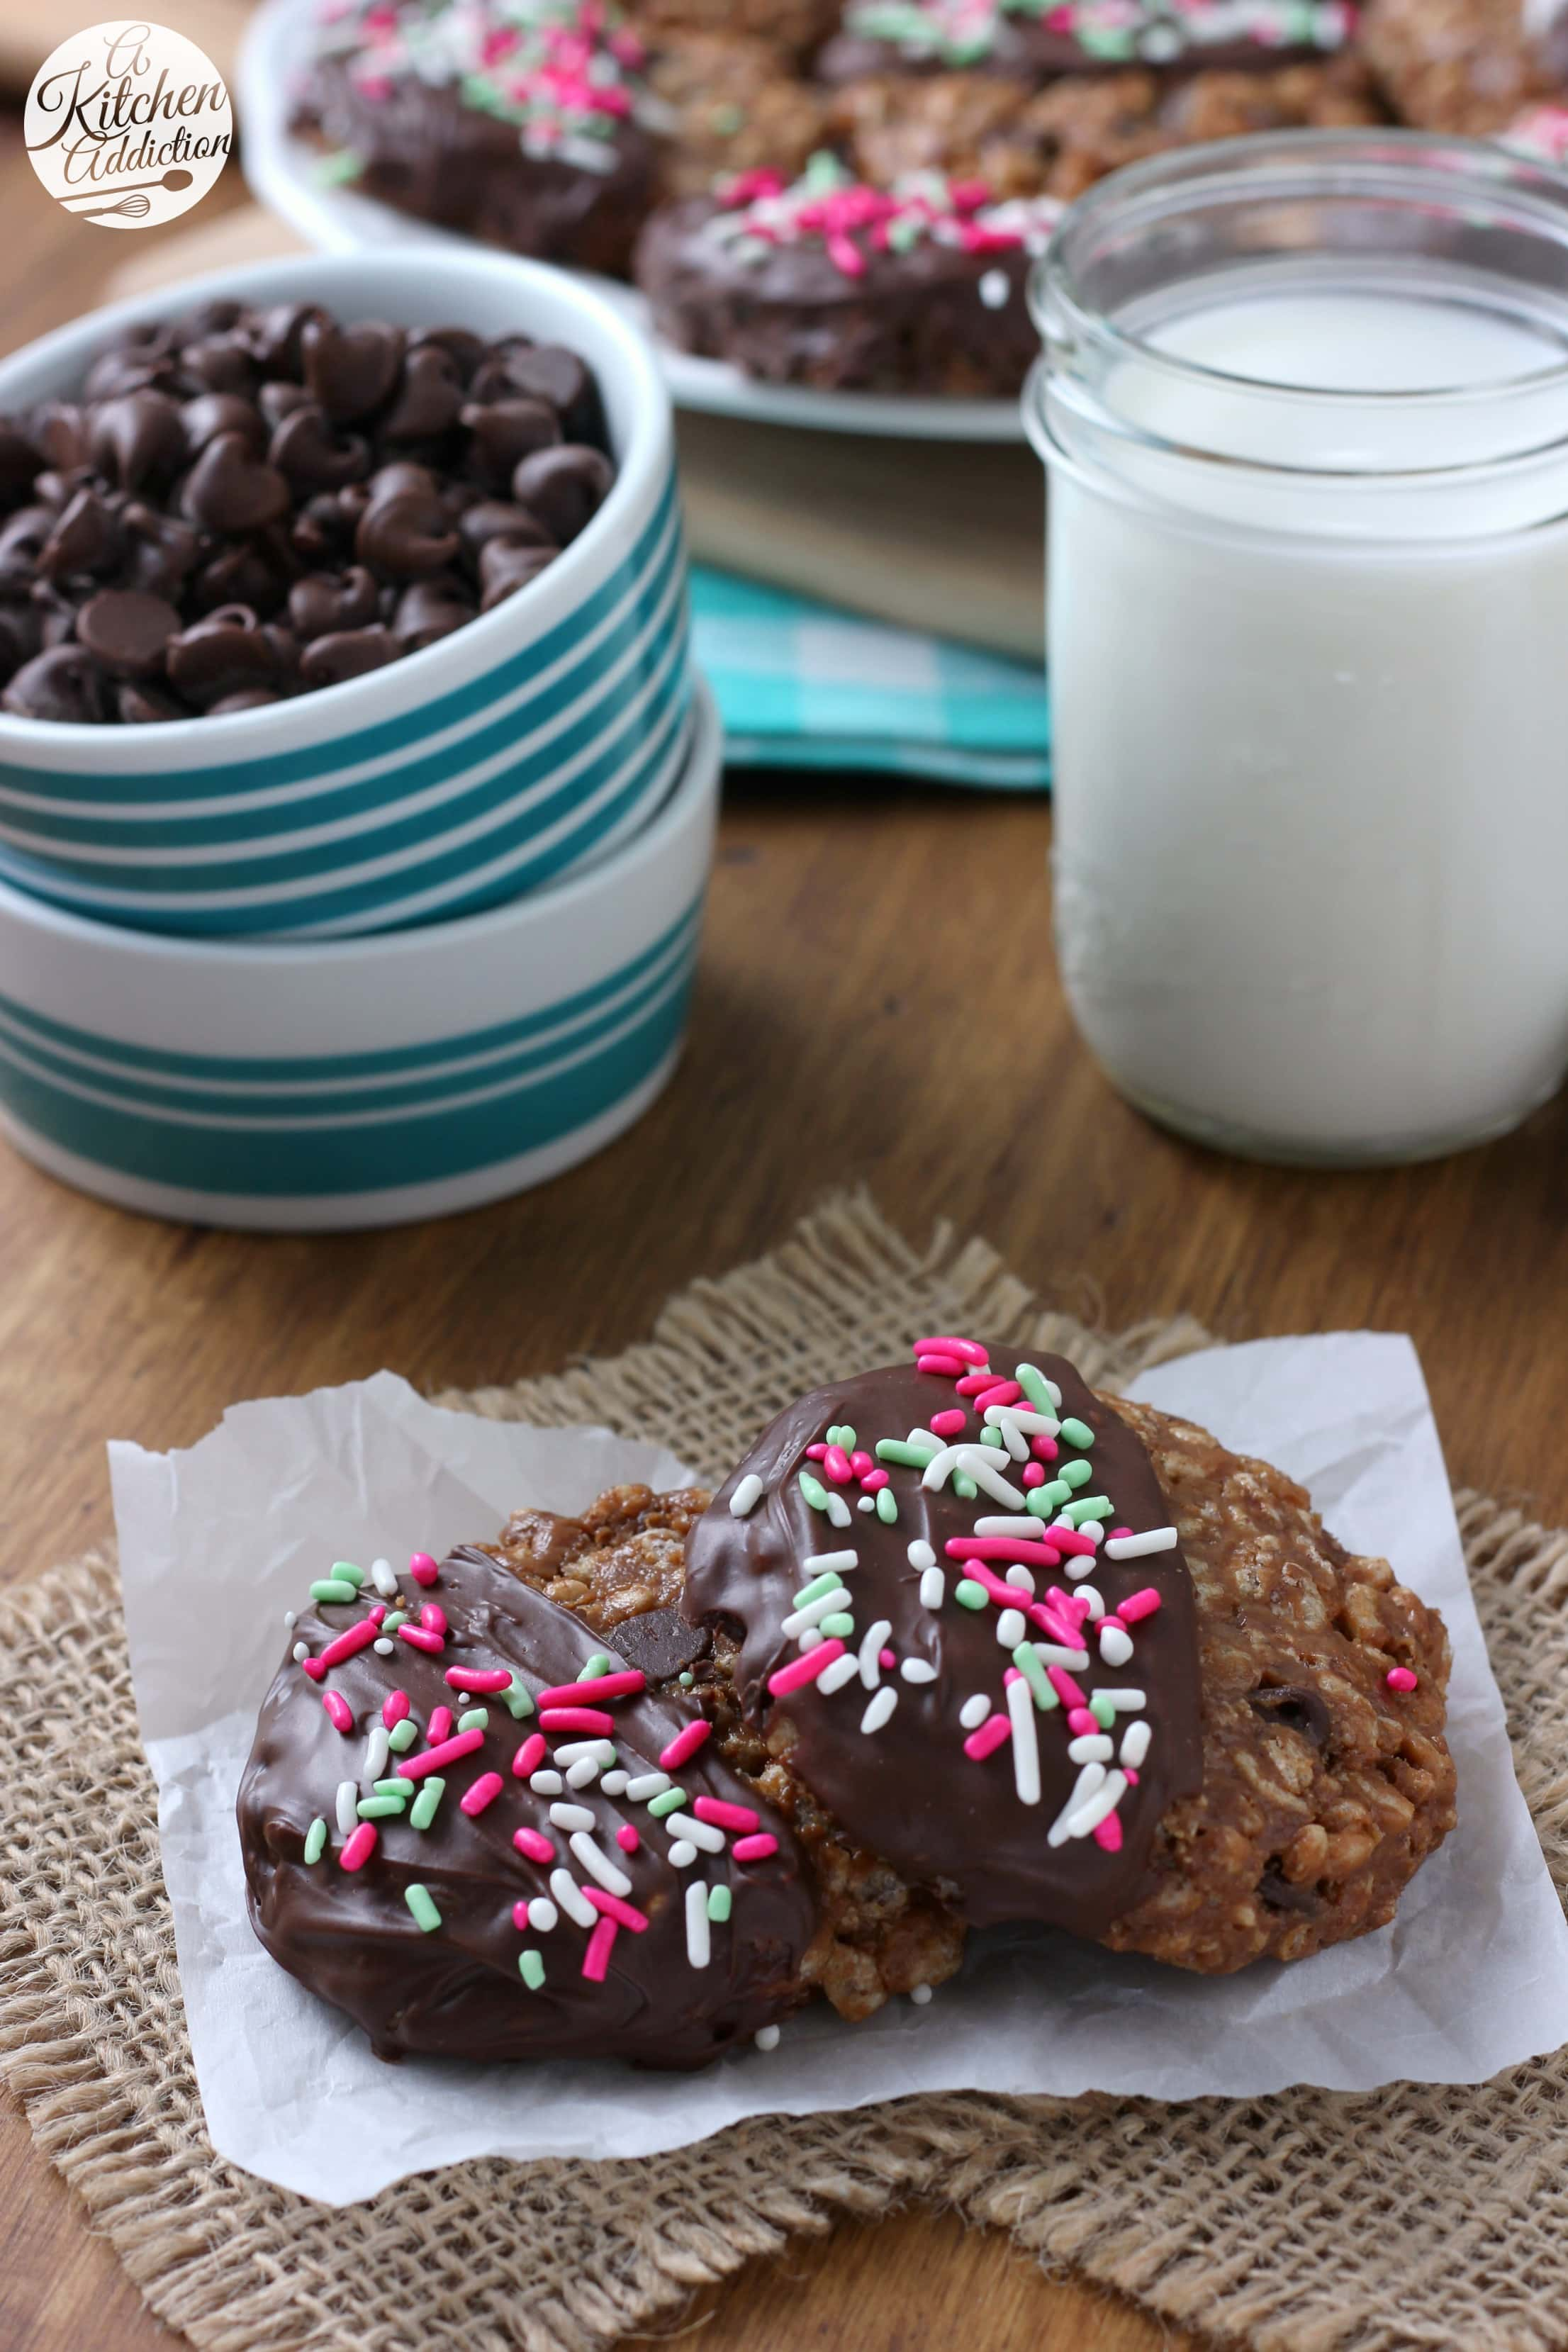 Easy No Bake Chocolate Peanut Butter Crunch Cookies Recipe from A Kitchen Addiction